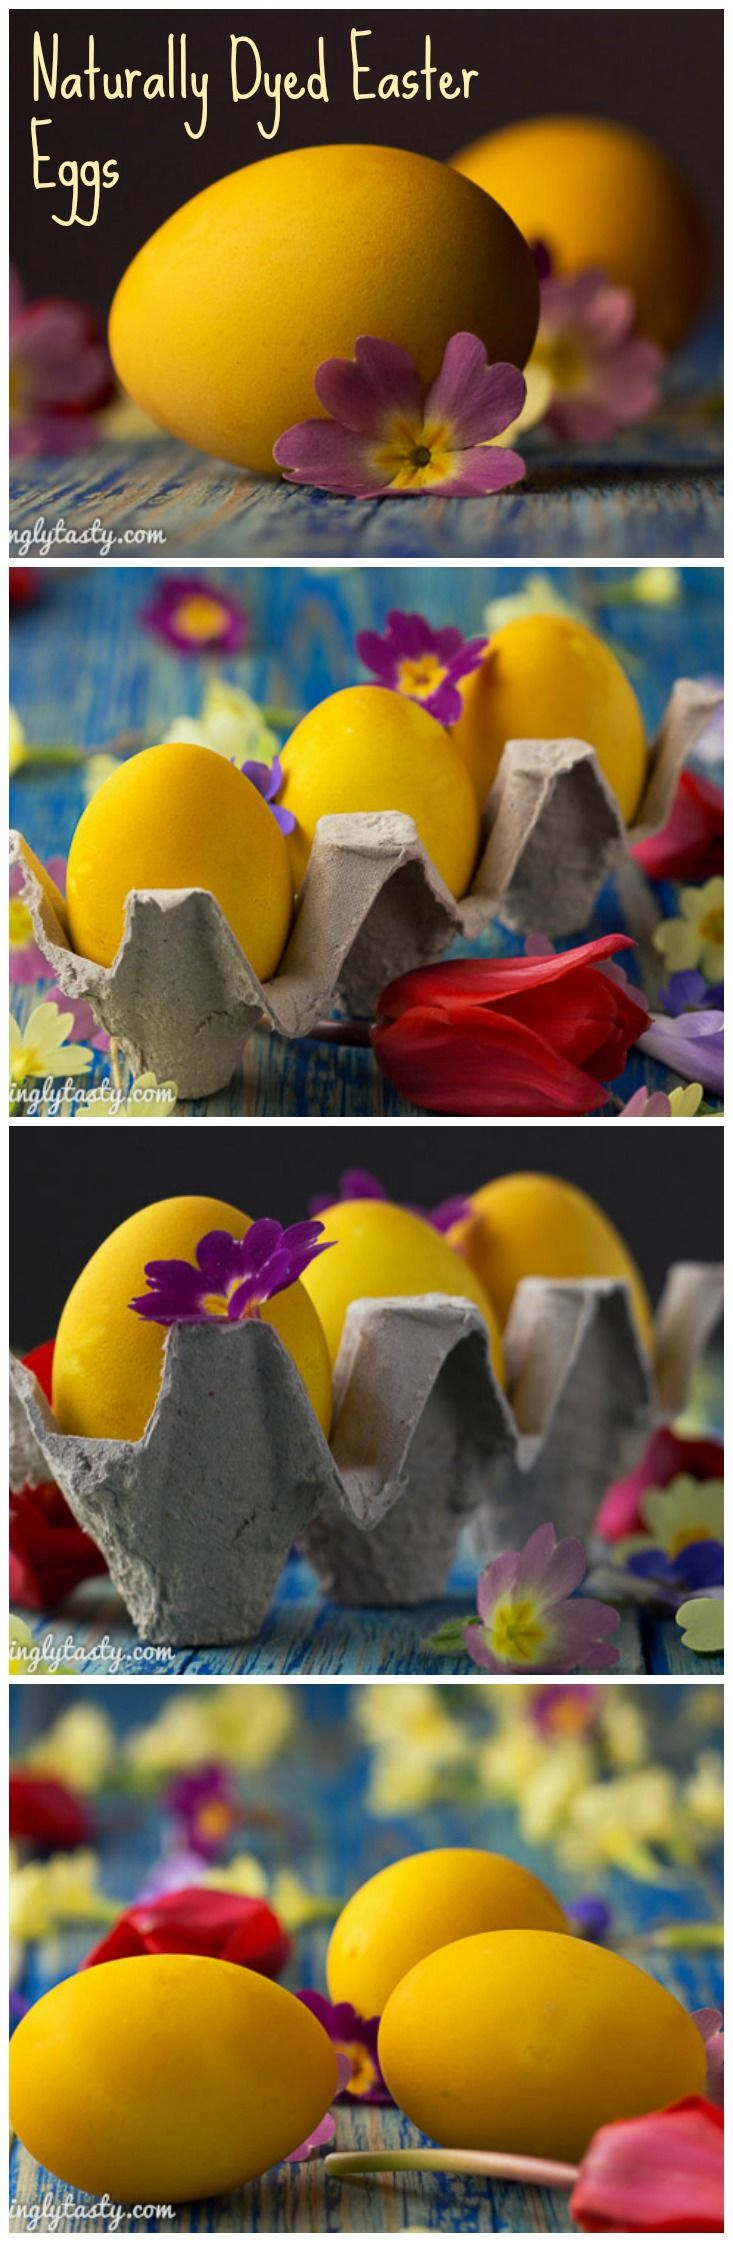 96 best paleo easter images on pinterest paleo kitchens and paleo if you dont want to use artificial food dyes for coloring your easter eggs negle Gallery